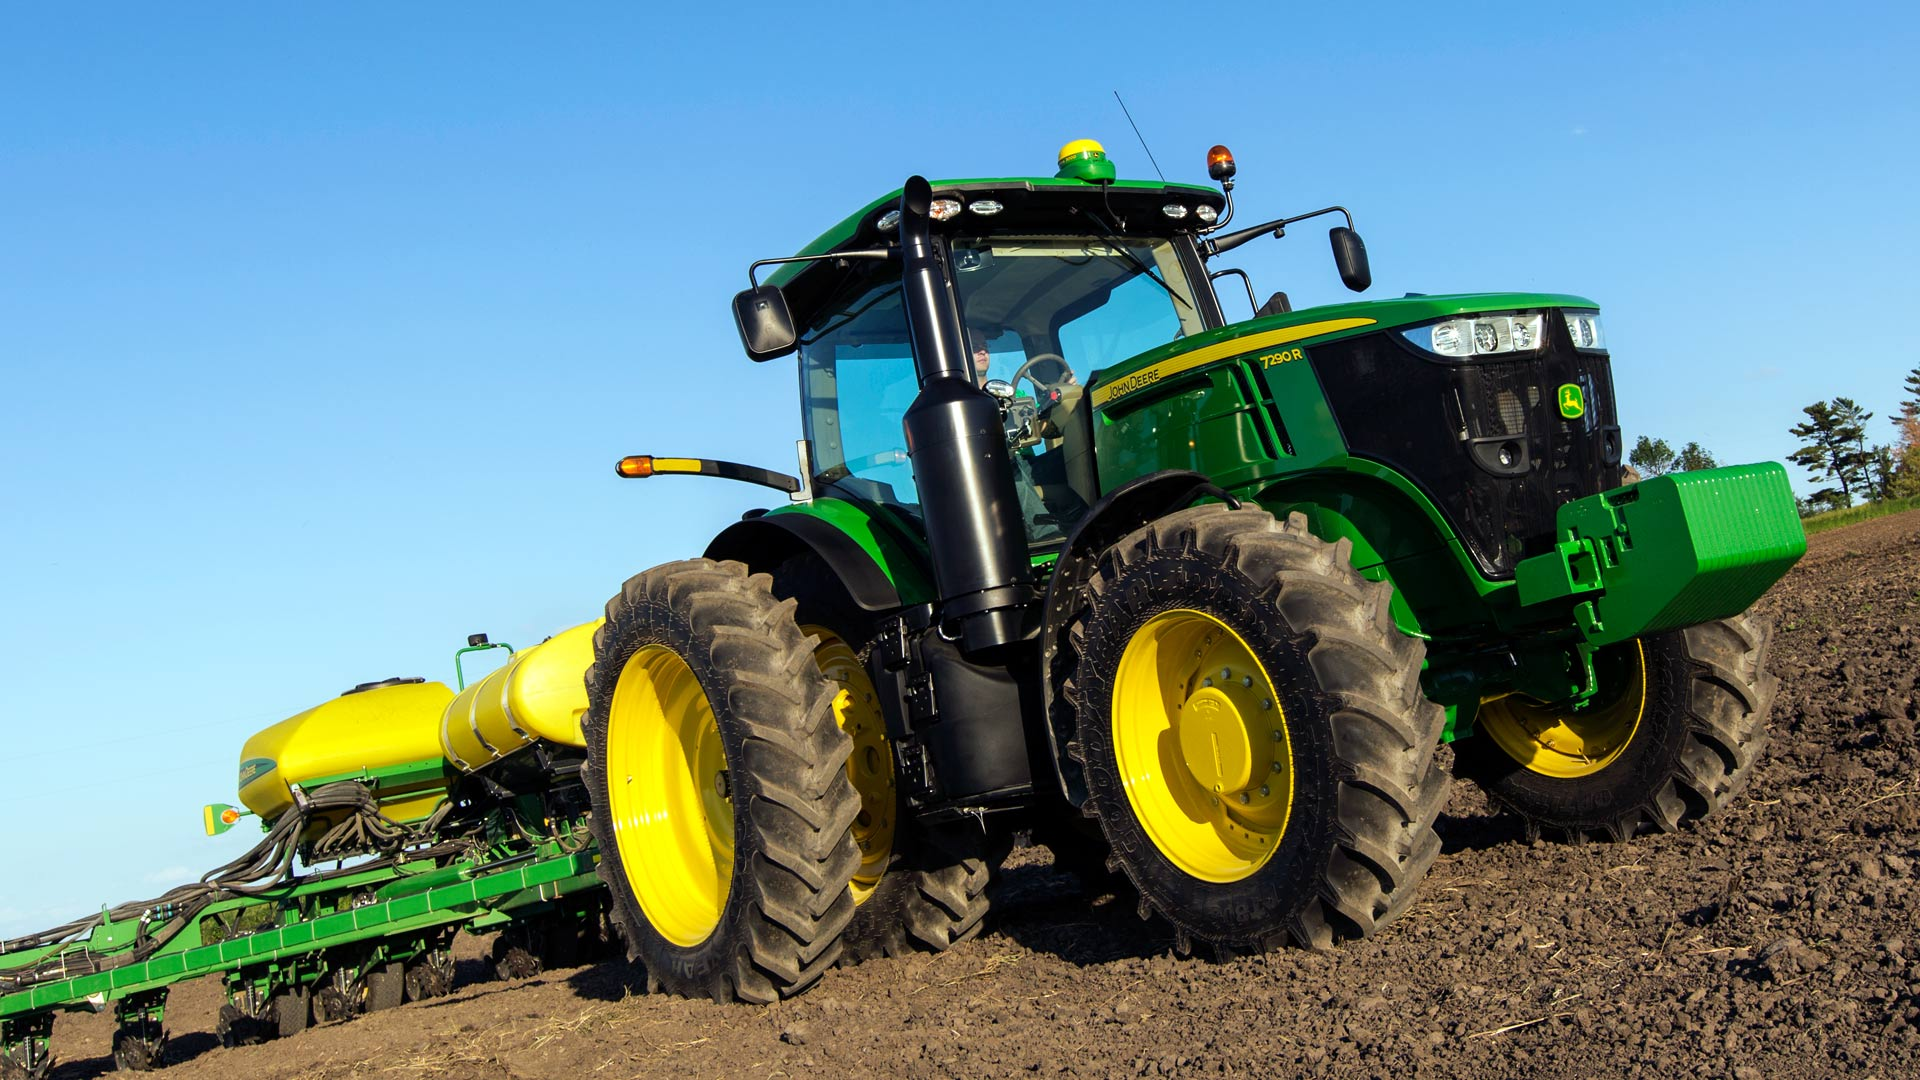 See the 7R Series  row crop tractor